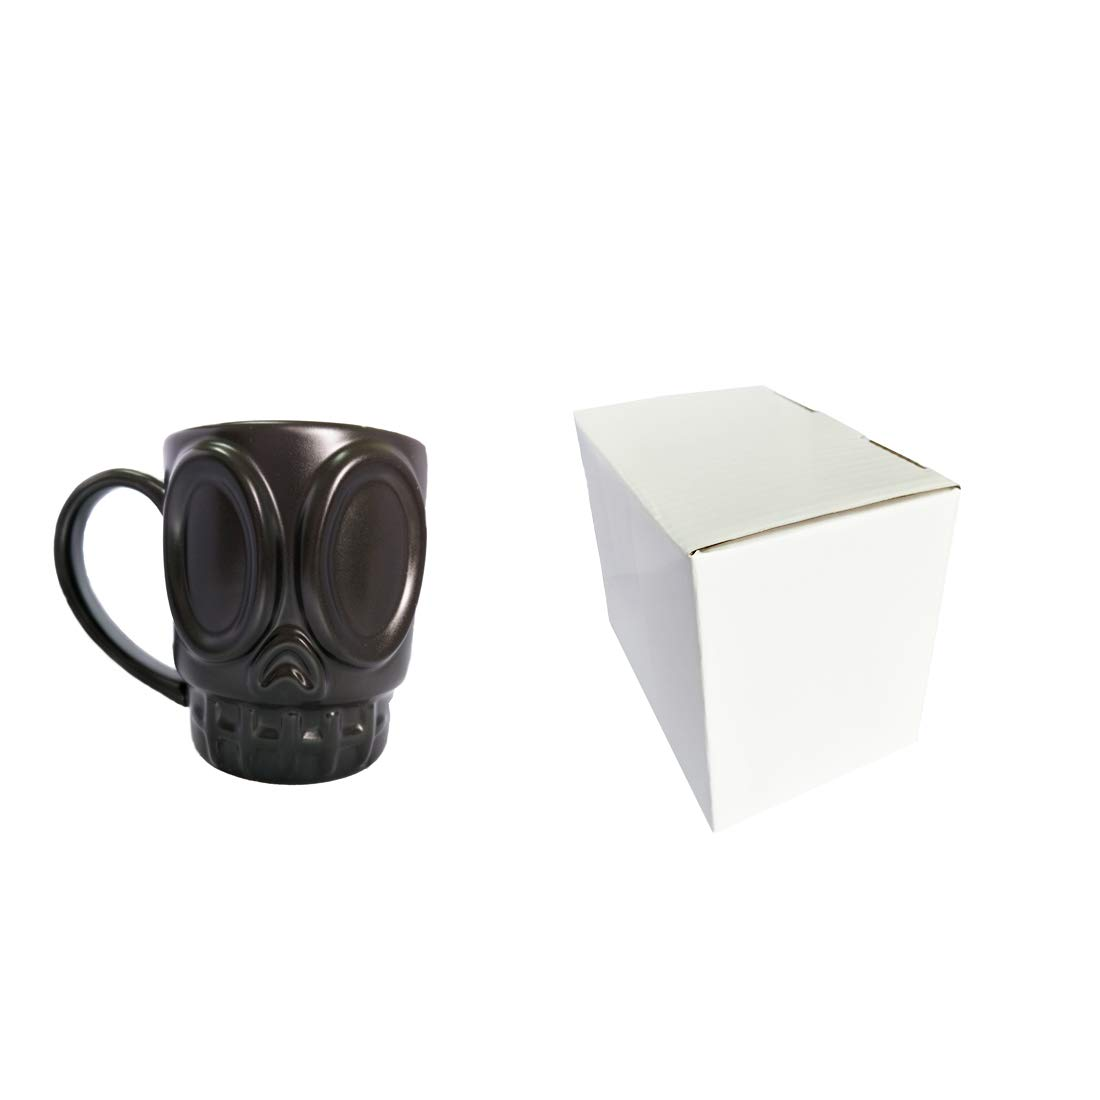 Prettyboy Ceramic 3D Personalized Unique Custom Design Porcelain Tea Cup Coffee Cup Mug with Tentacle Black Skull